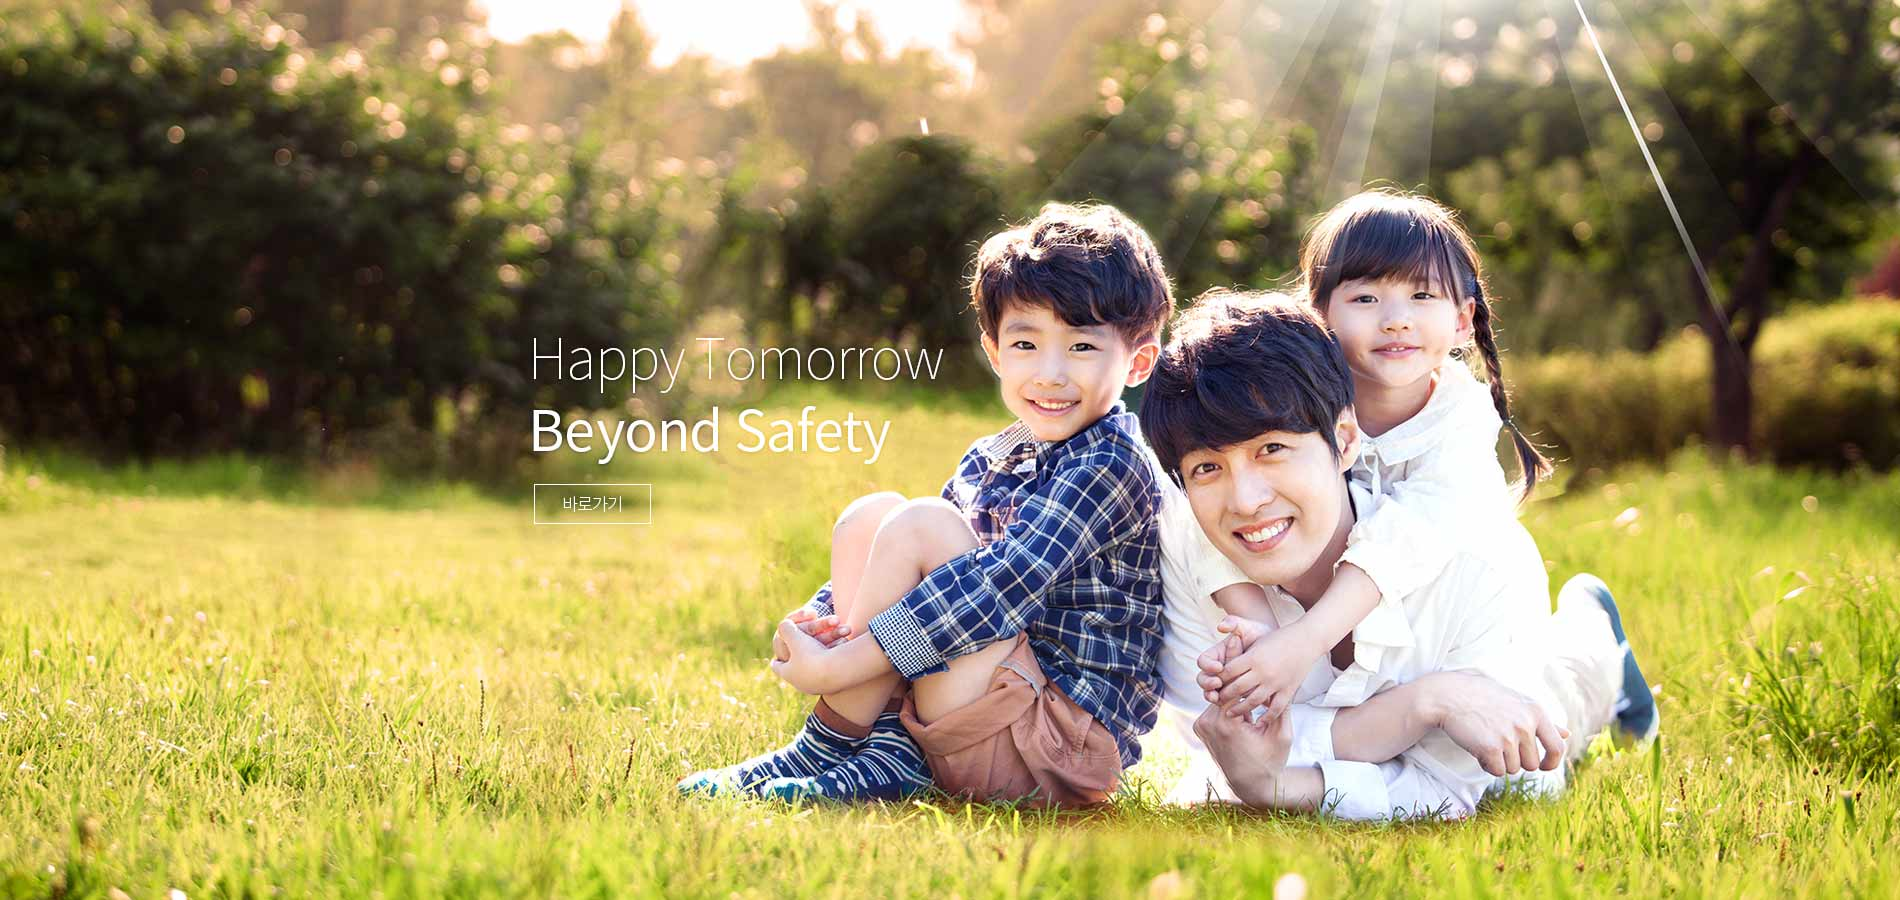 Happy tomorrow beyond safety